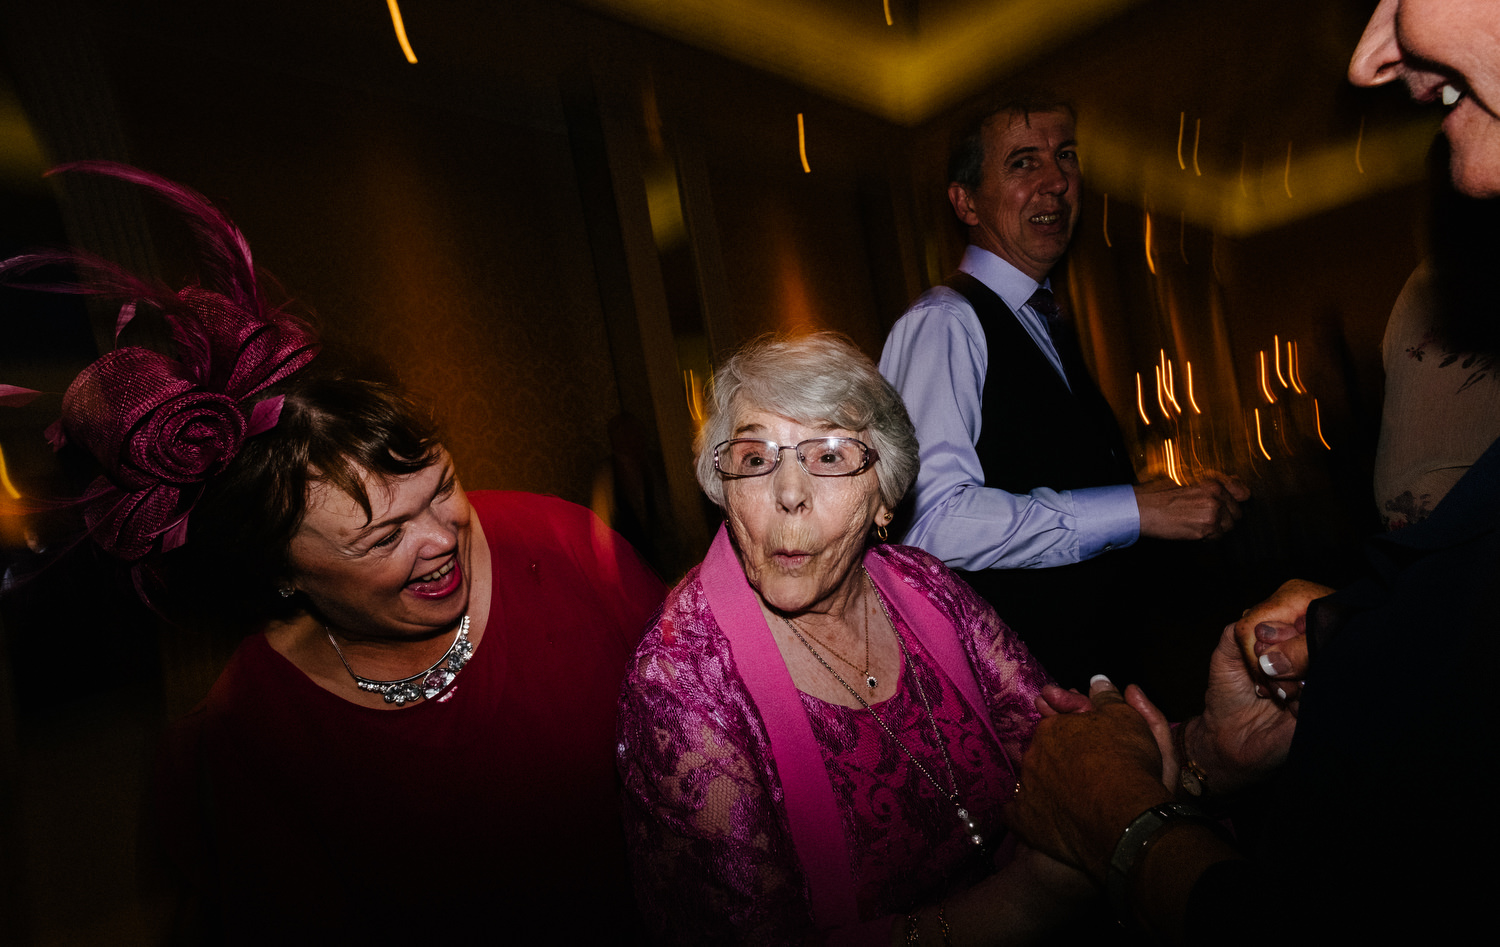 dmp0694_photographer_wedding_dublin_david_mcclelland_candid_photography_fujifilm_shelbourne_reception_documentary